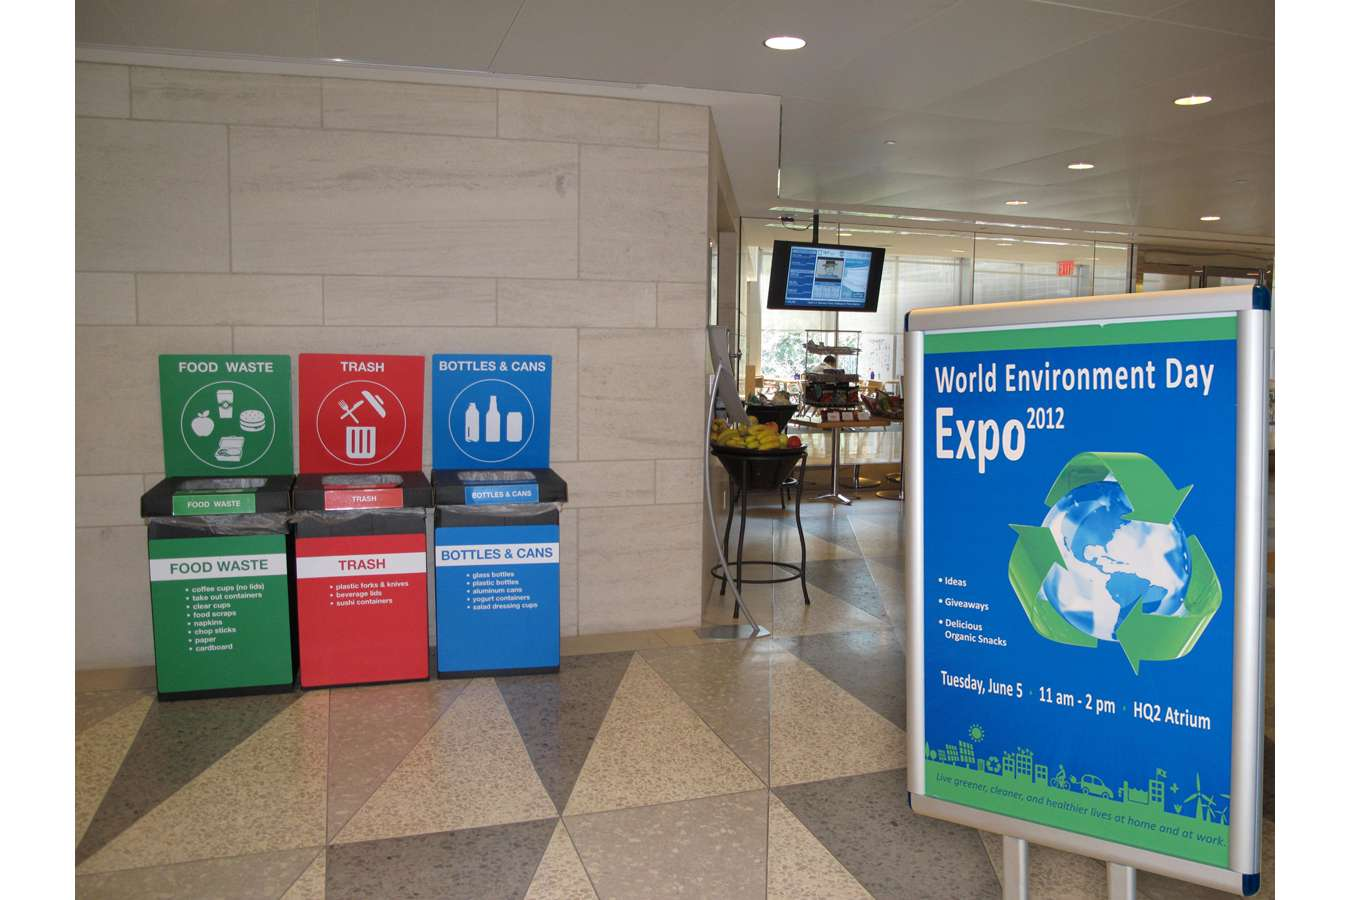 IMF Pic 2a : Recycling bins with recycled PVC signs  |  World Environment Day event poster